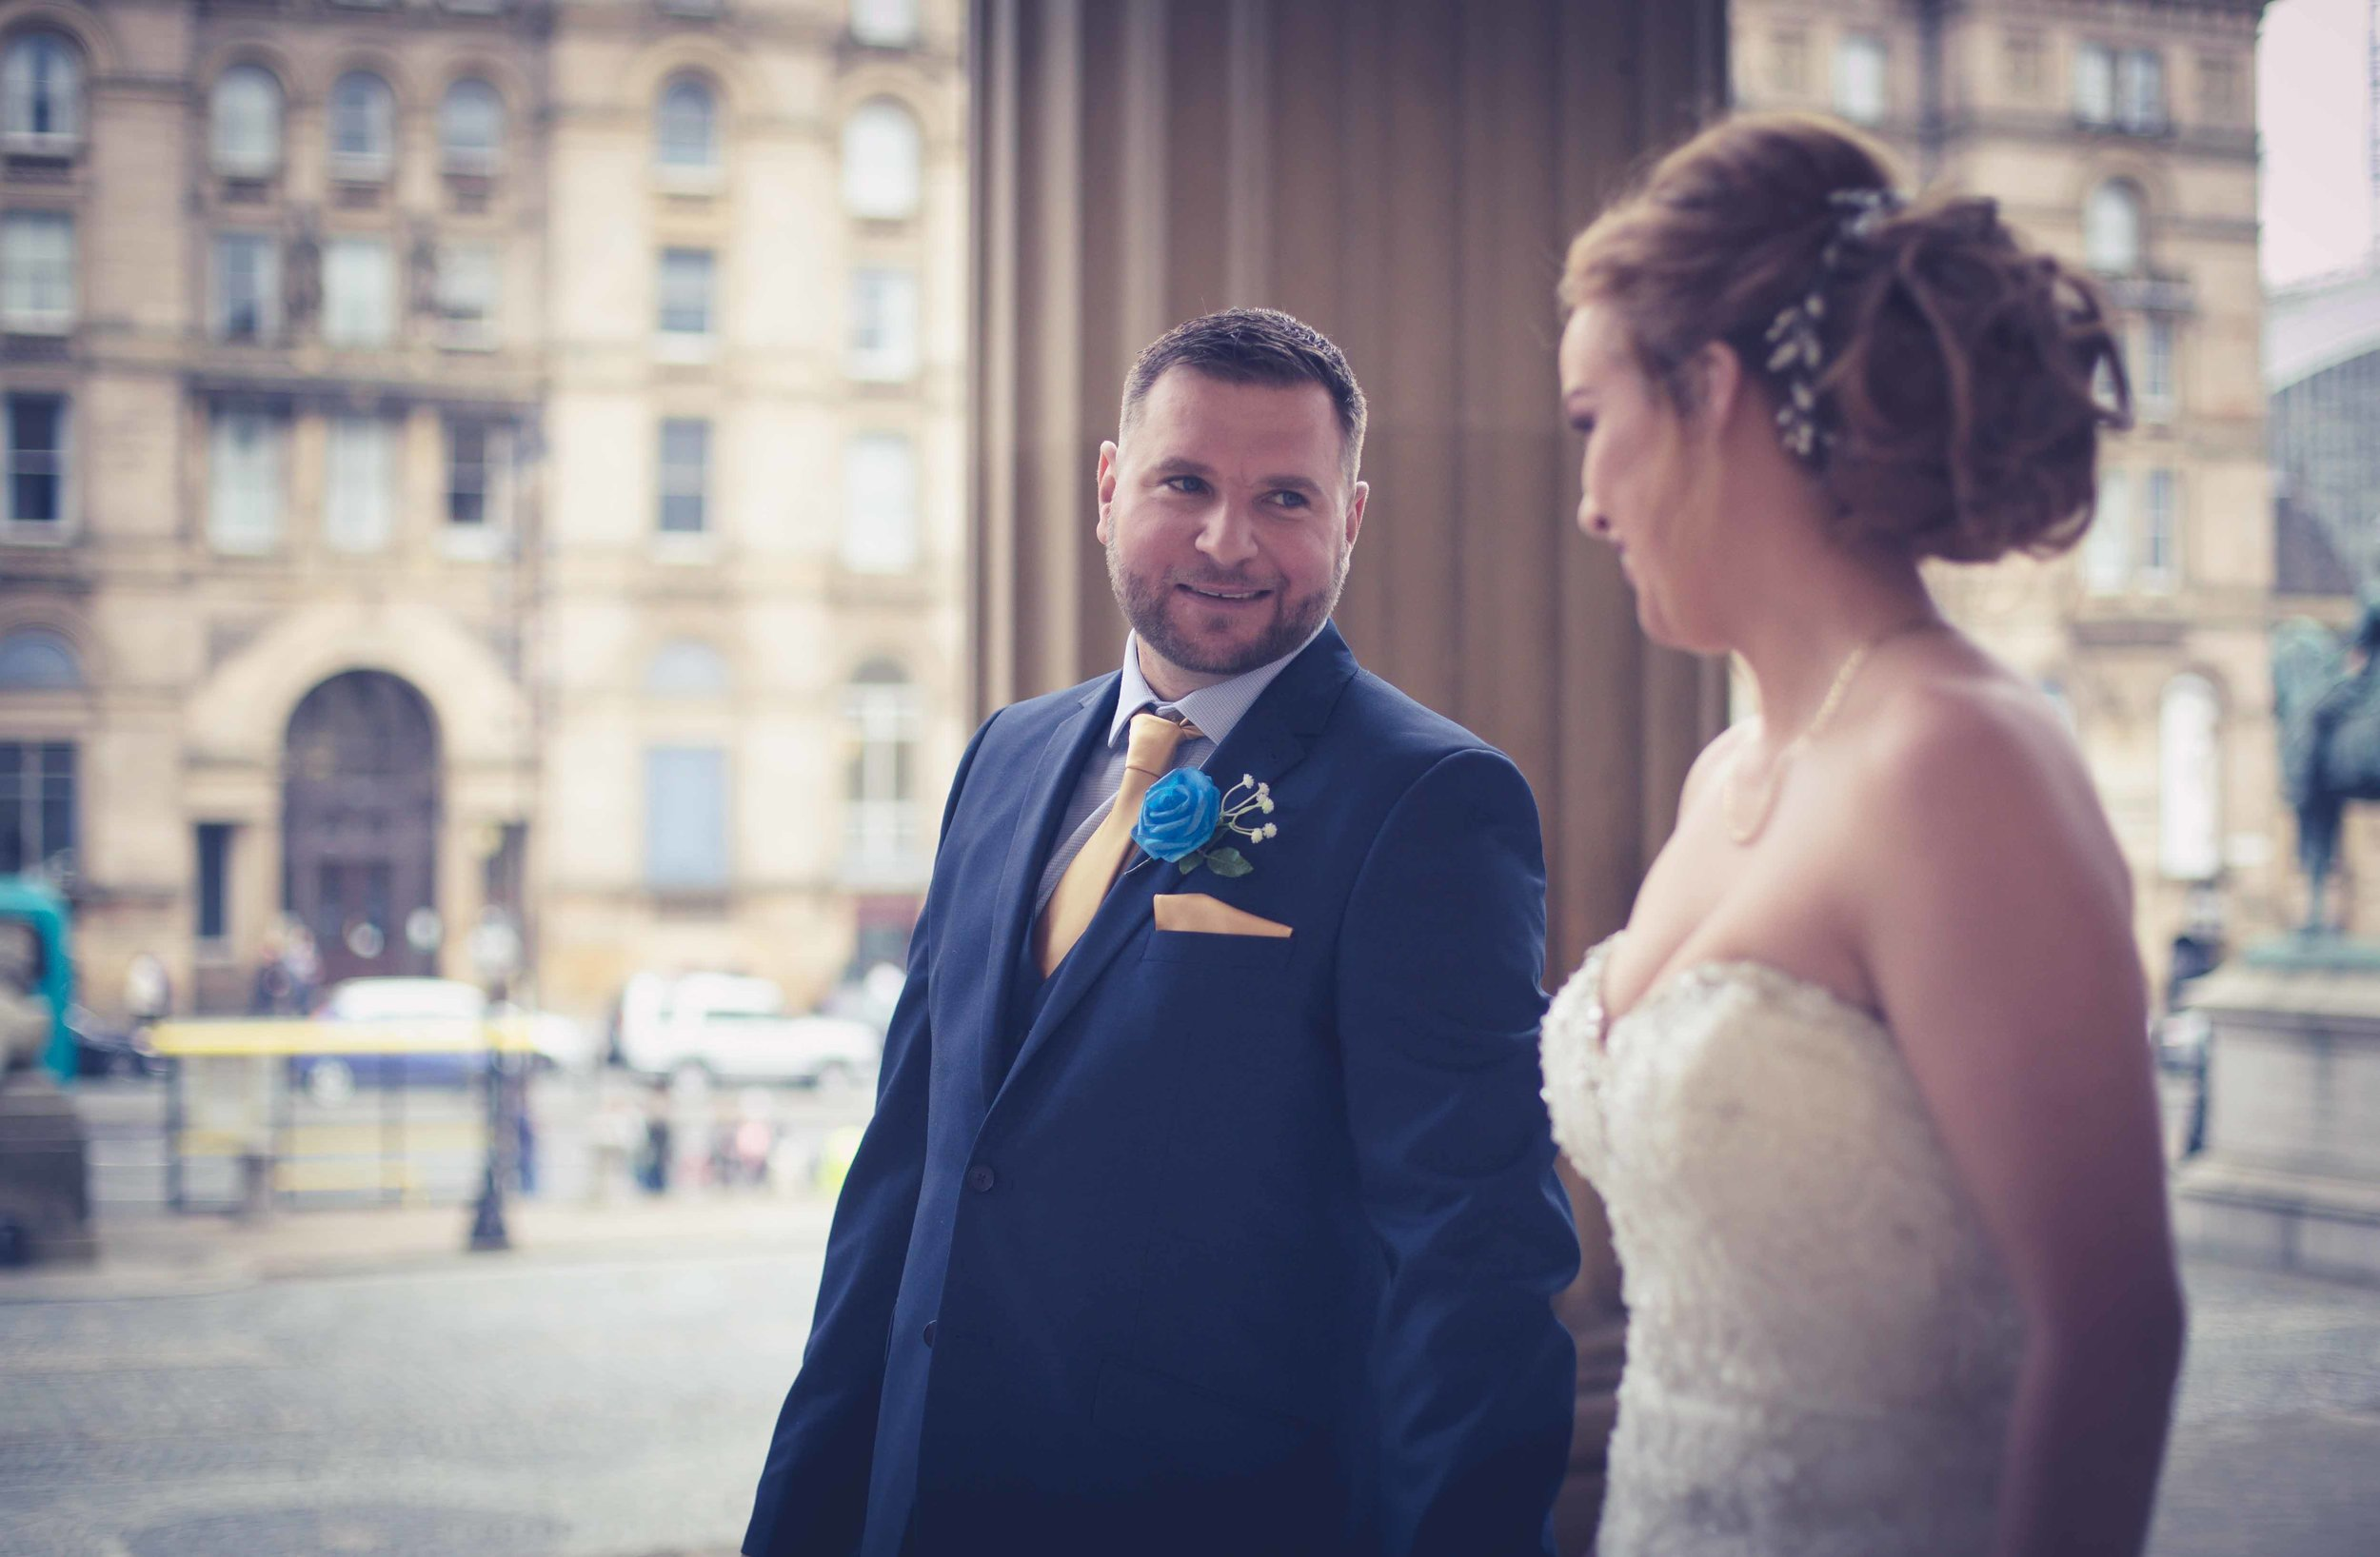 wedding-photos-at-st-georges-hall-liverpool (64 of 122).jpg